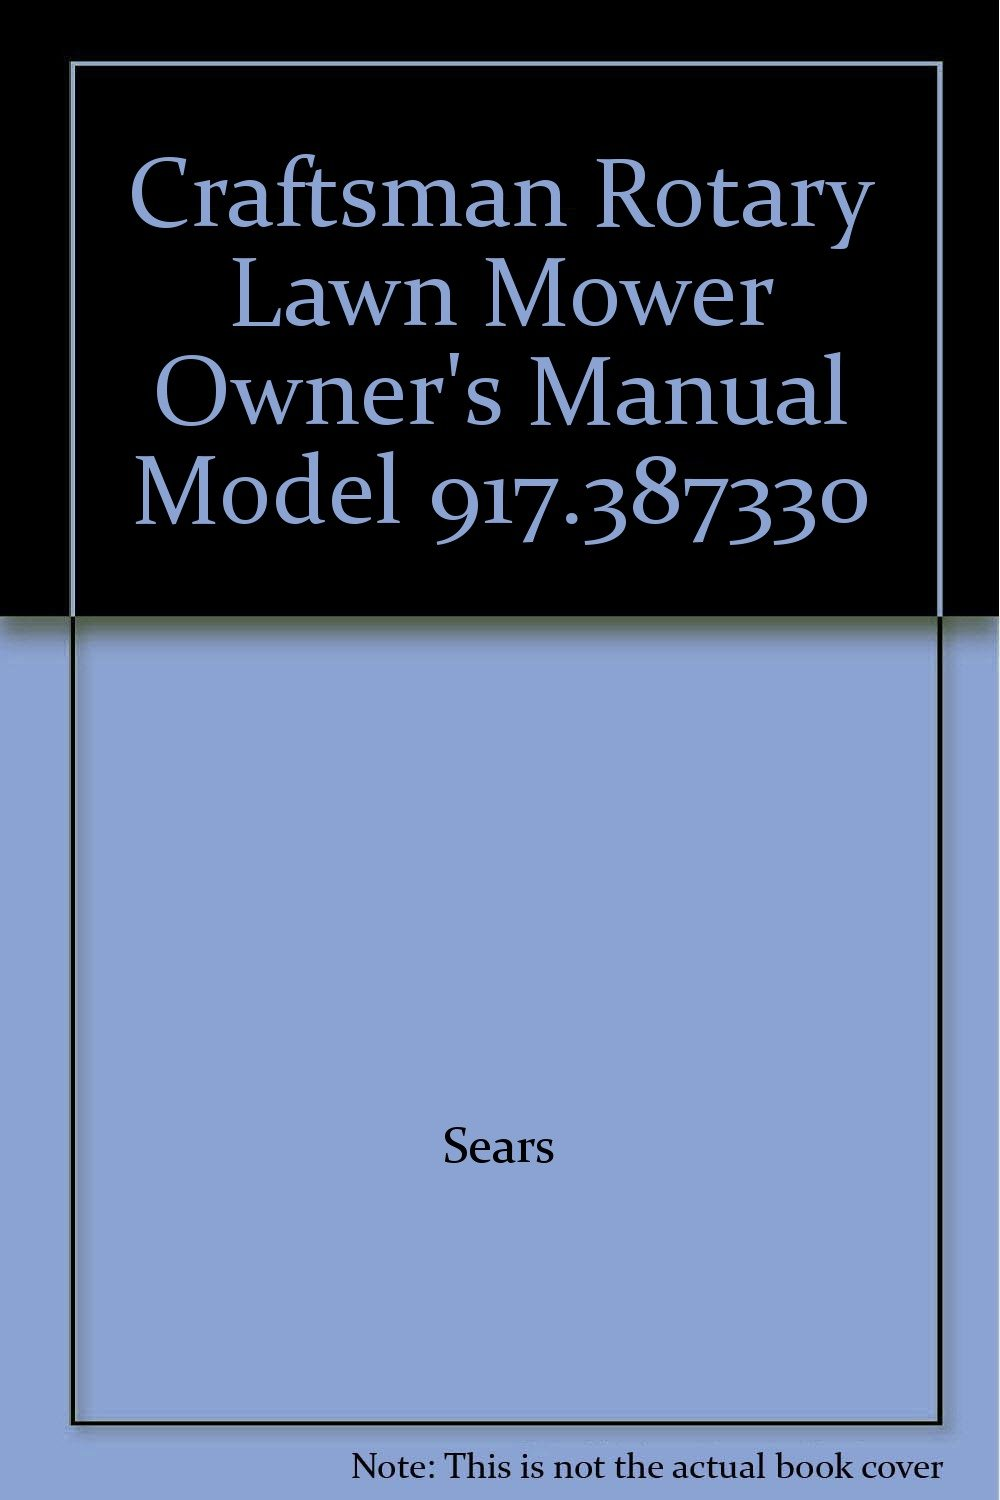 craftsman lawn mower owners manuals